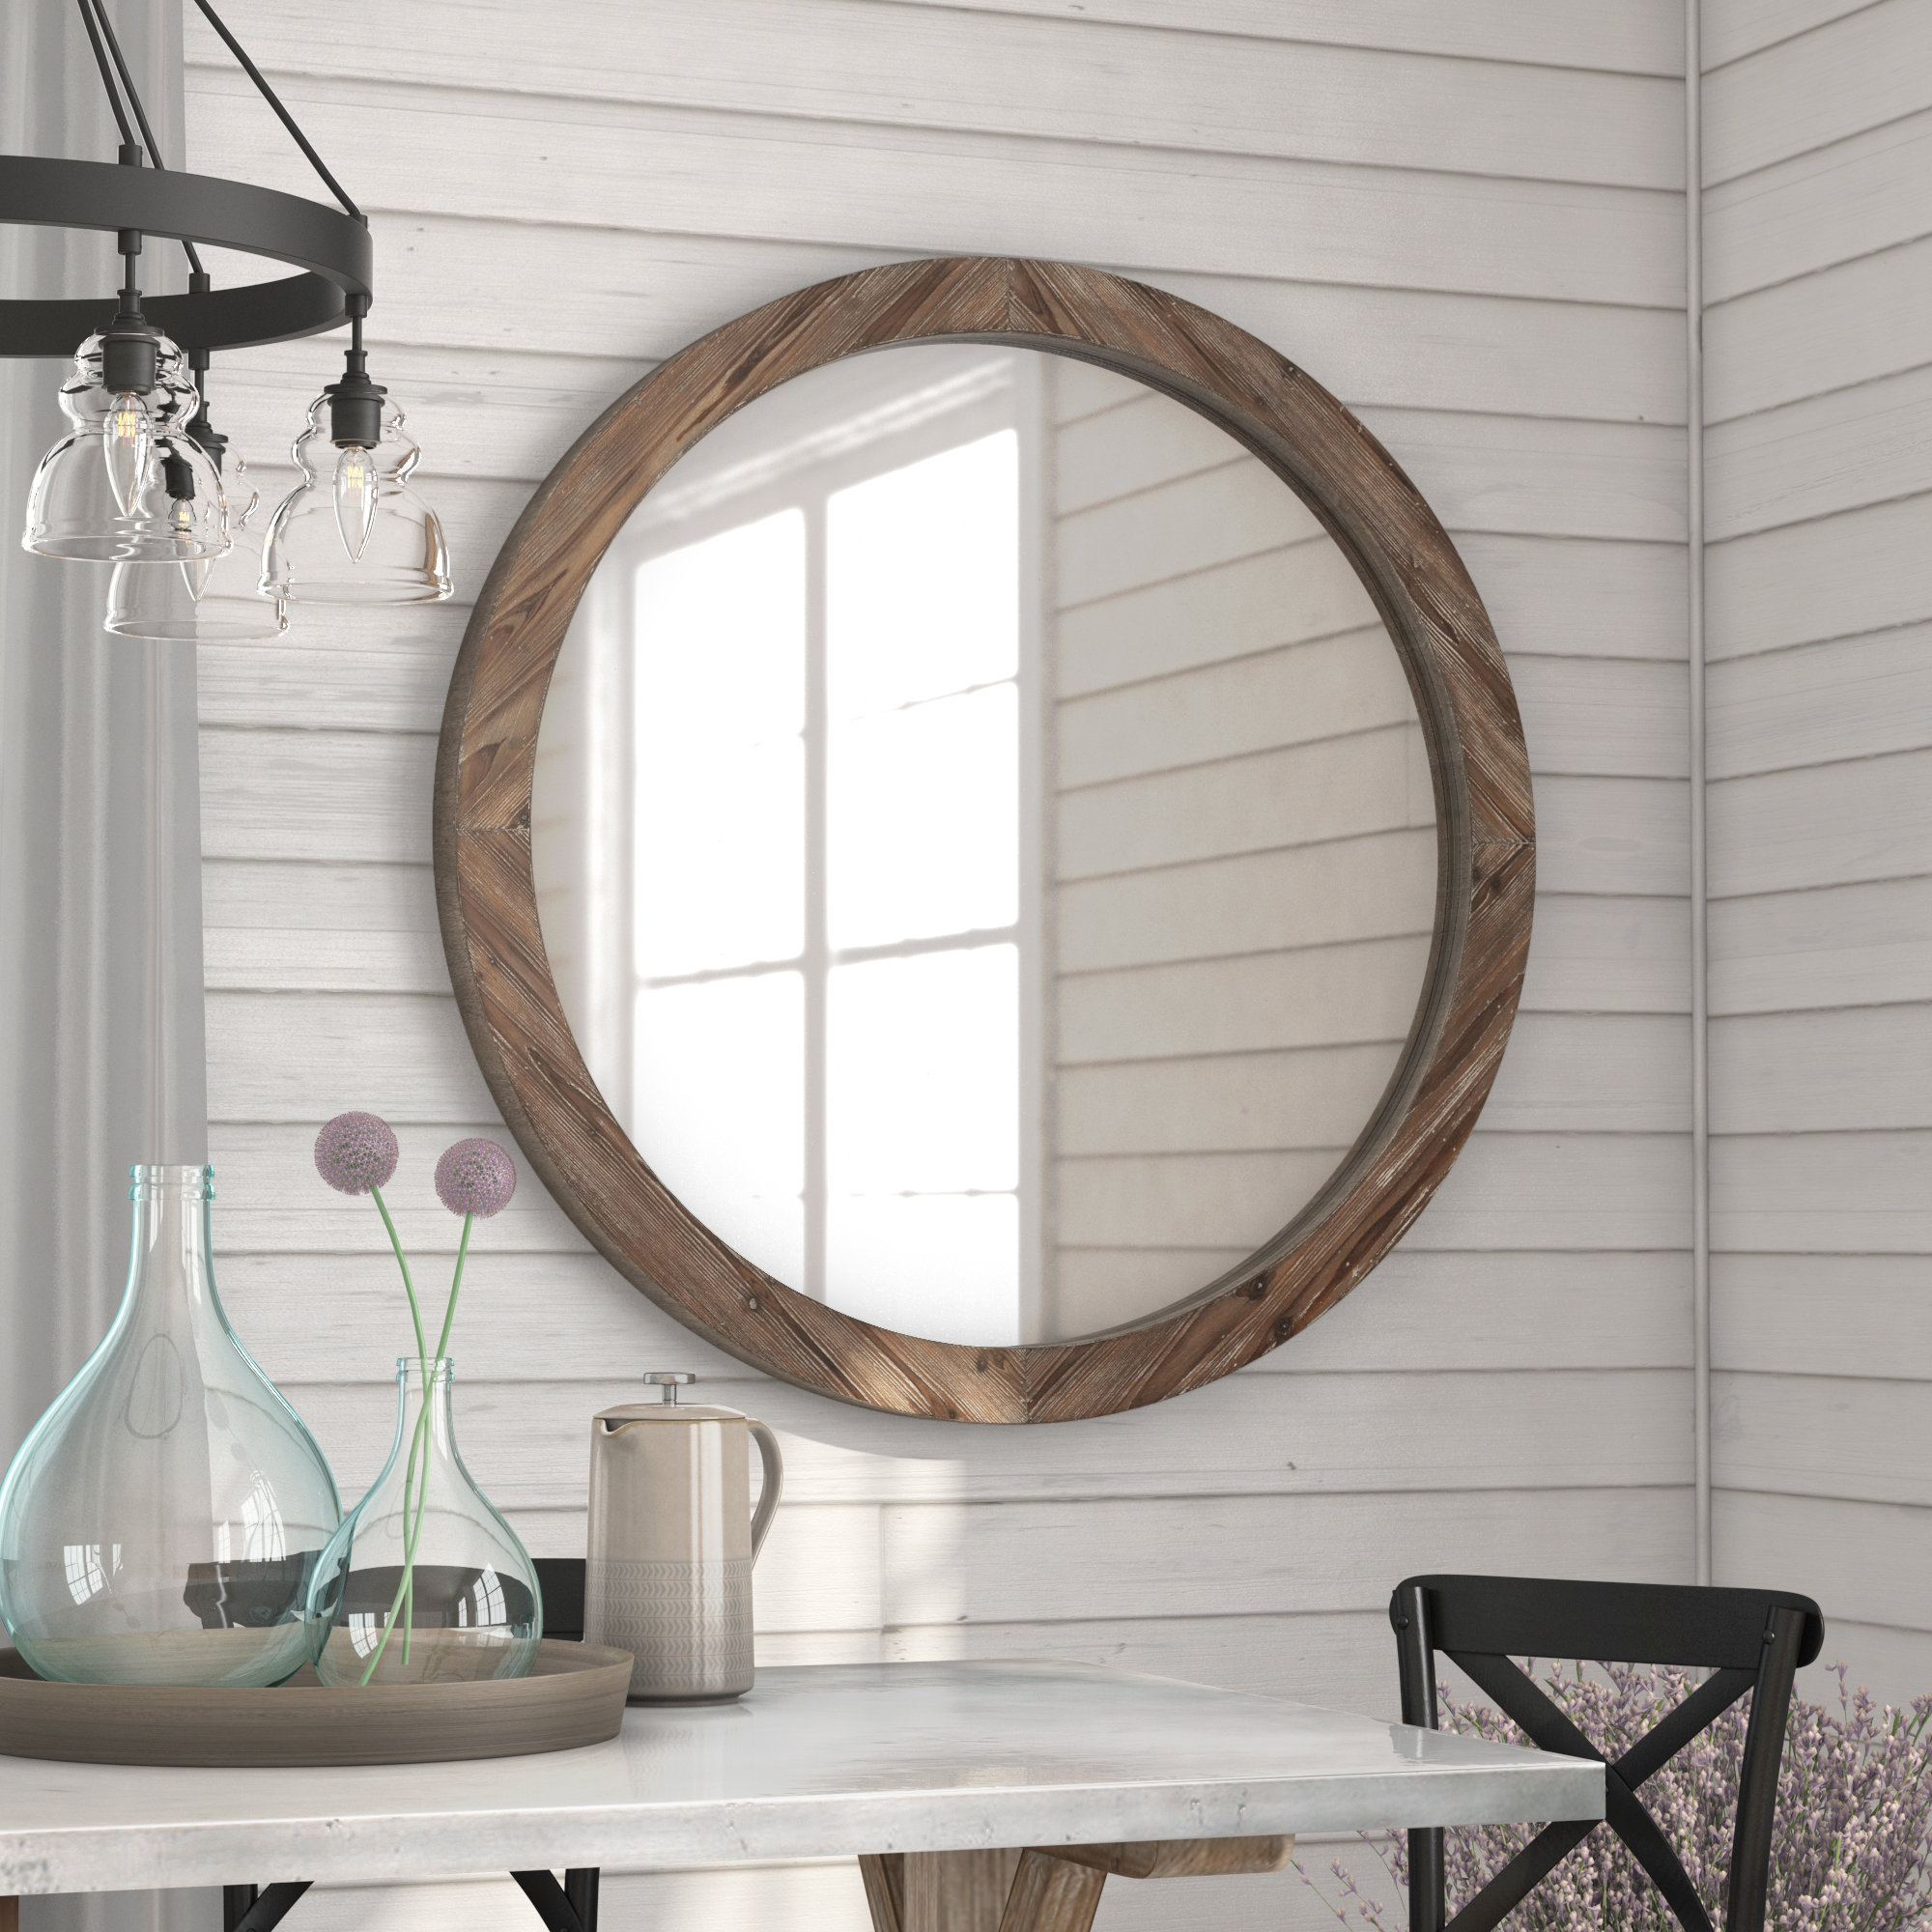 Farmhouse & Rustic Union Rustic Wall & Accent Mirrors For Perillo Burst Wood Accent Mirrors (View 18 of 20)